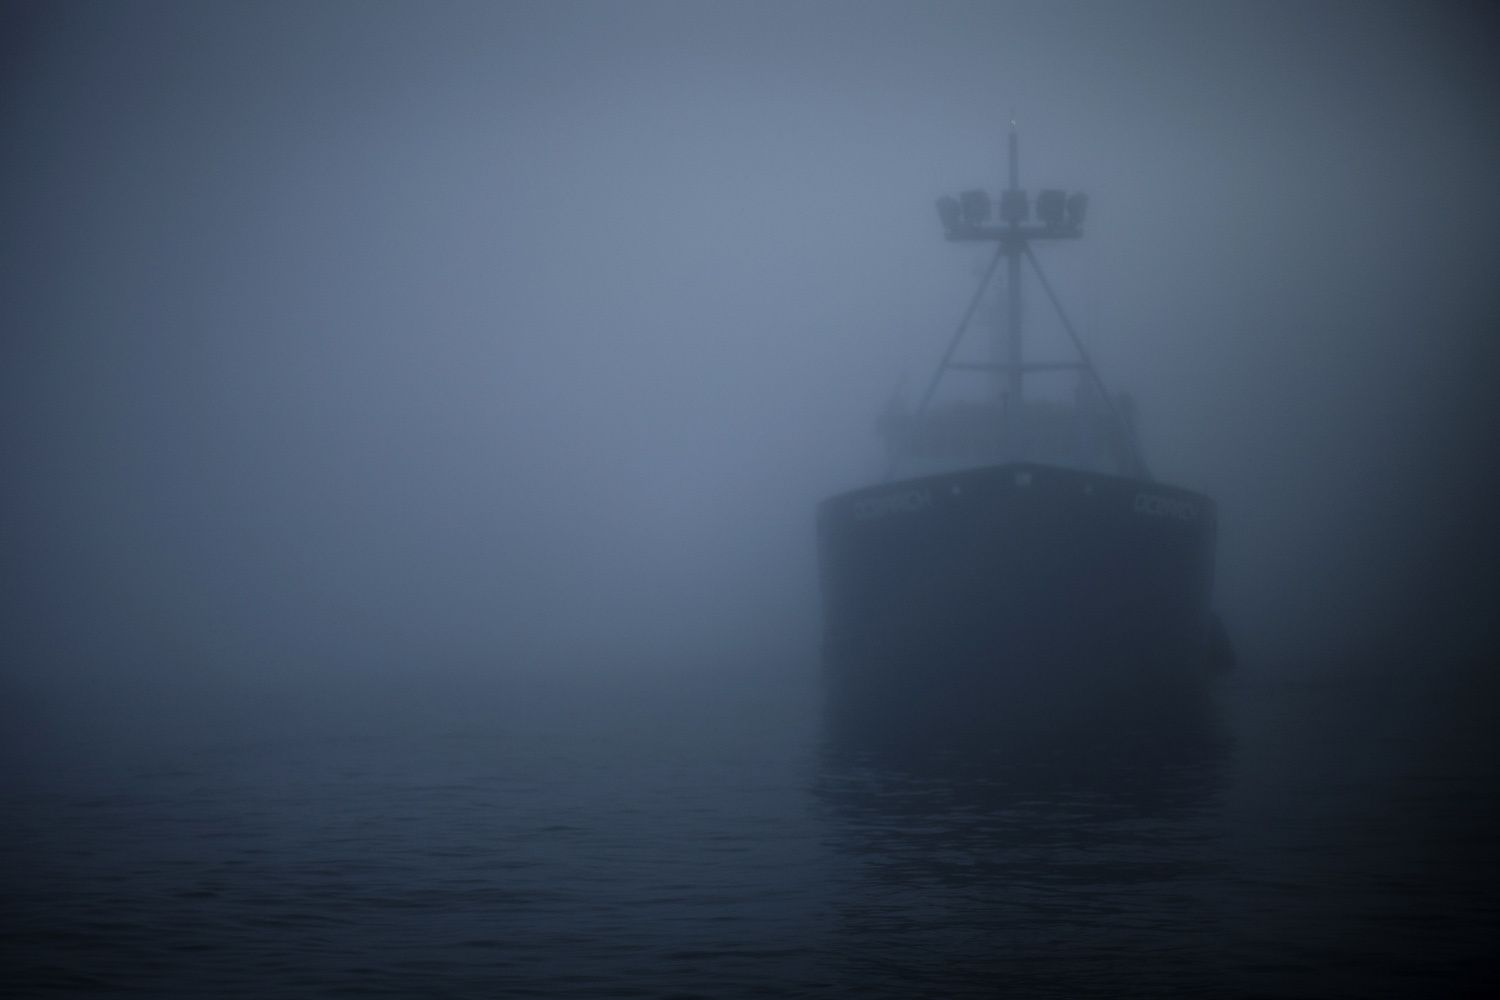 1ship_foggy_sea_ocearch_r_snow.jpg